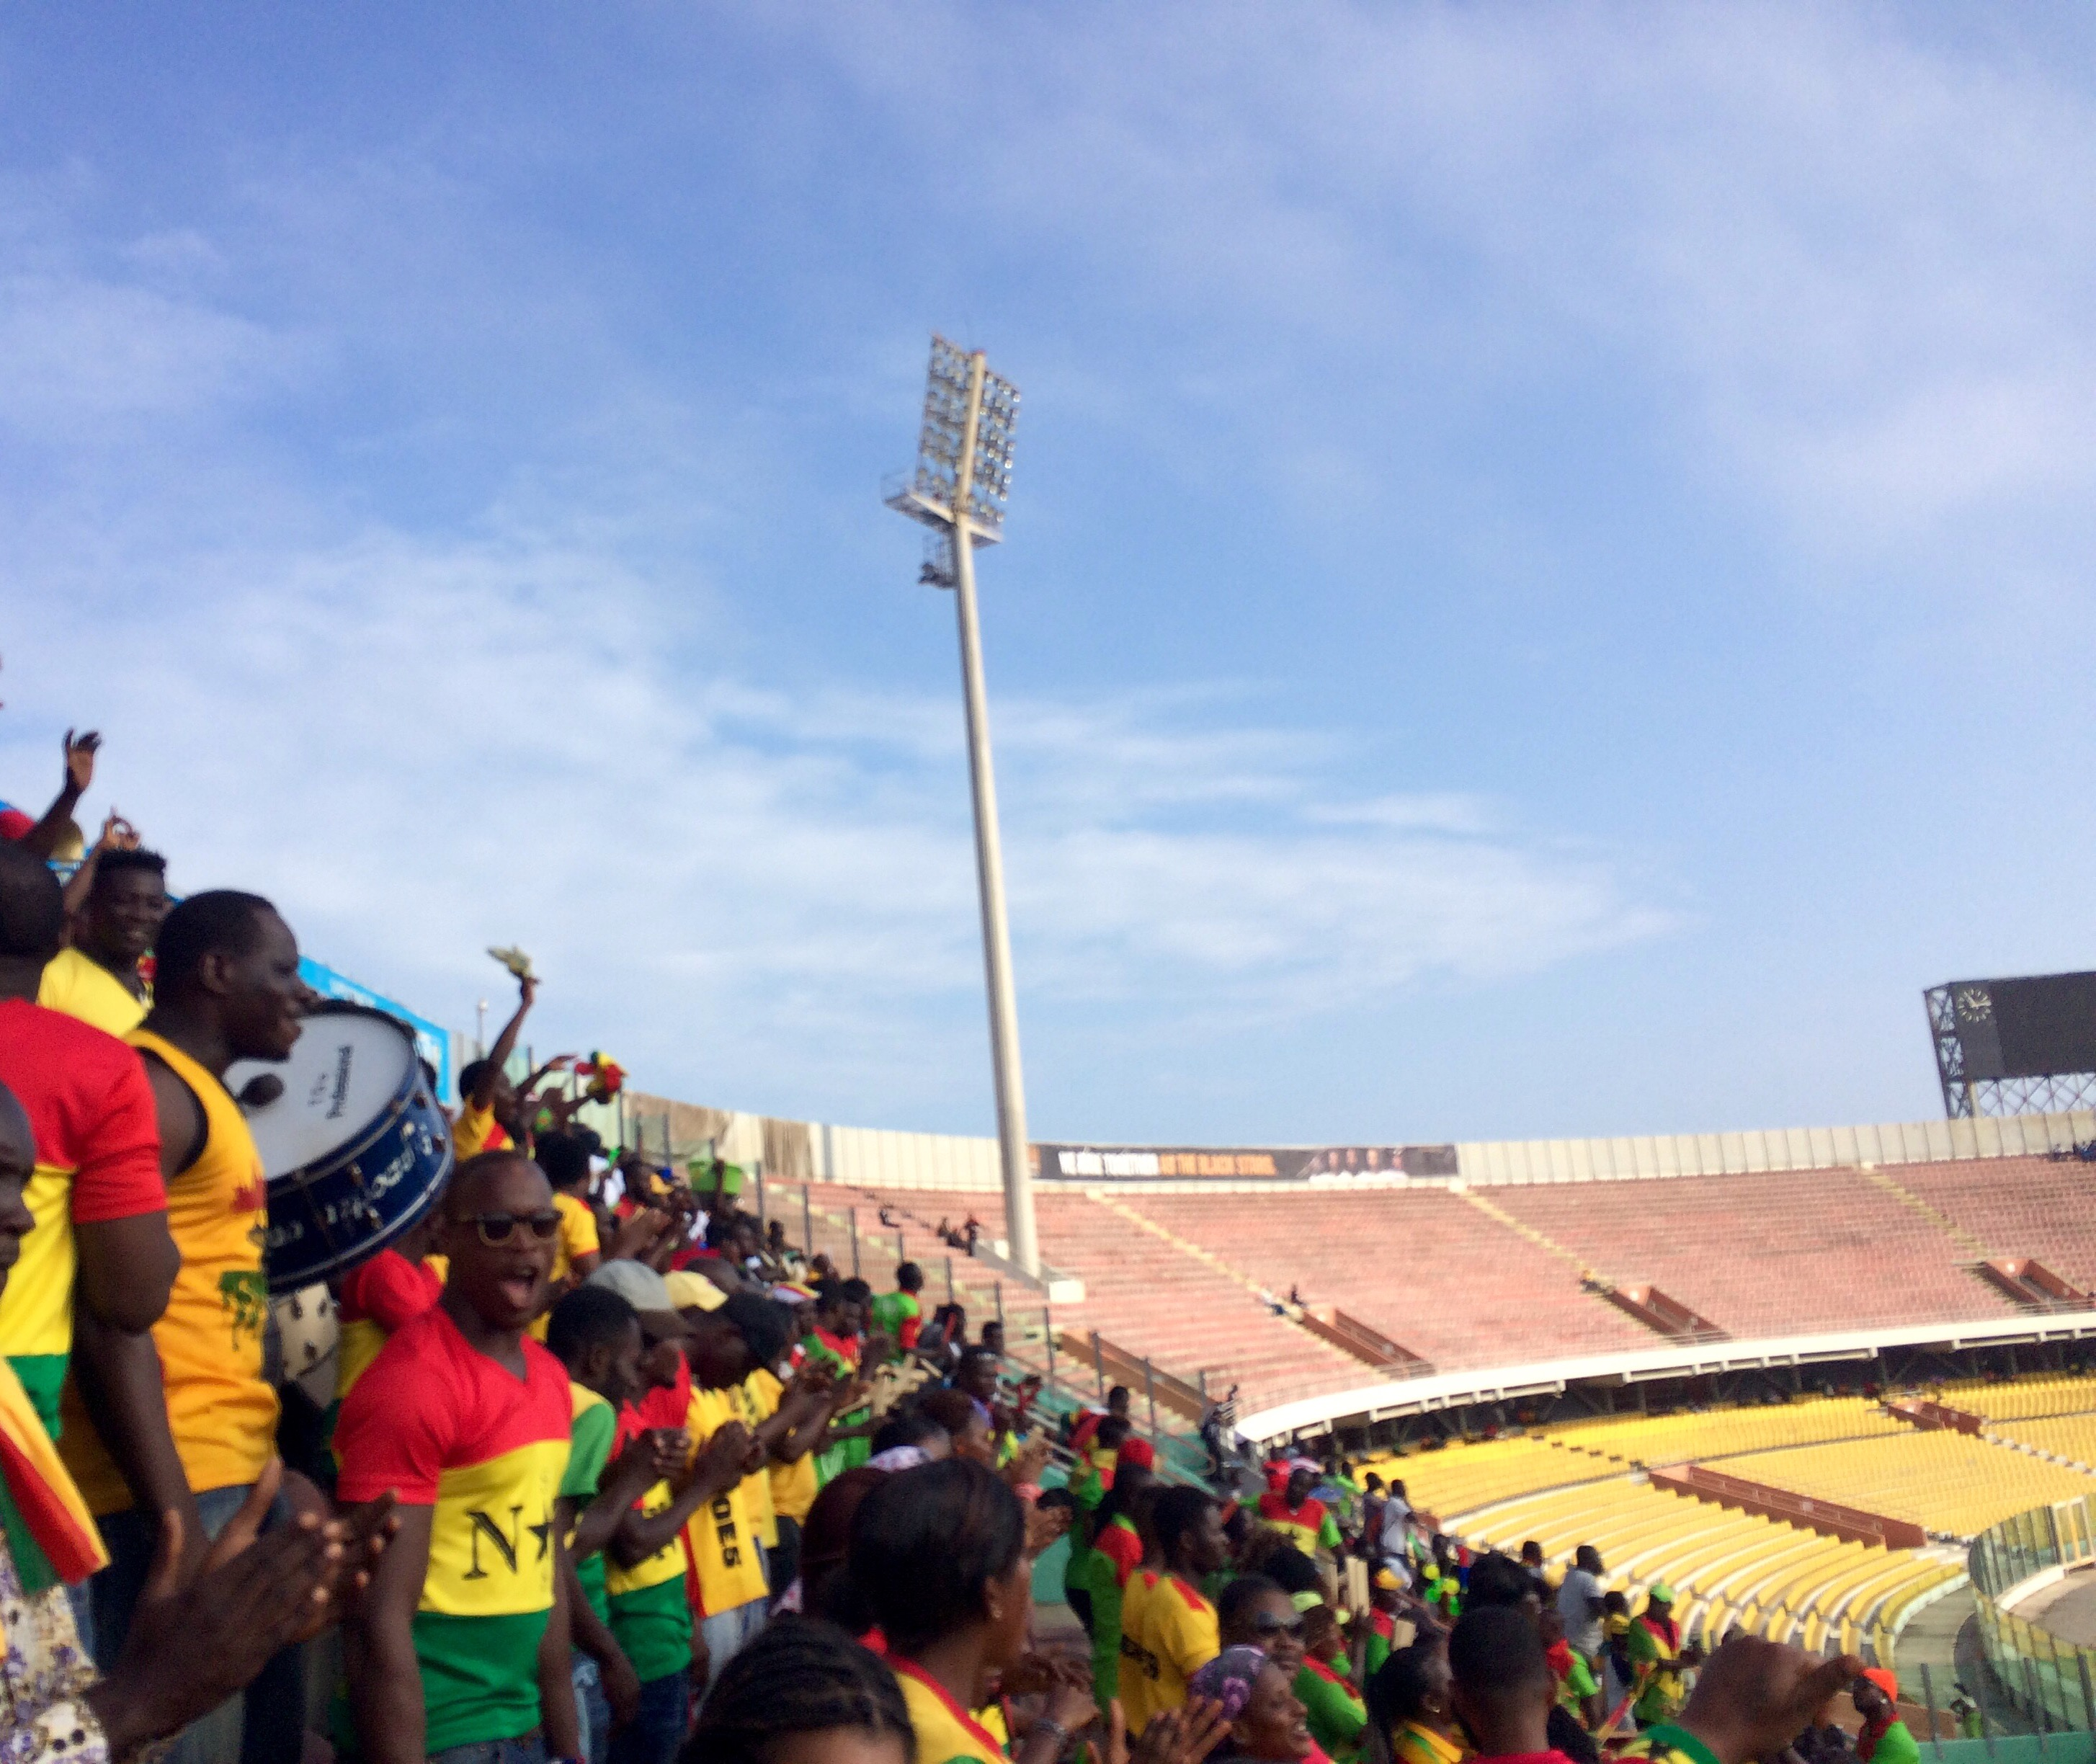 Black Stars Supporter Section | Photo by Wilson Carletti (All Rights Reserved)